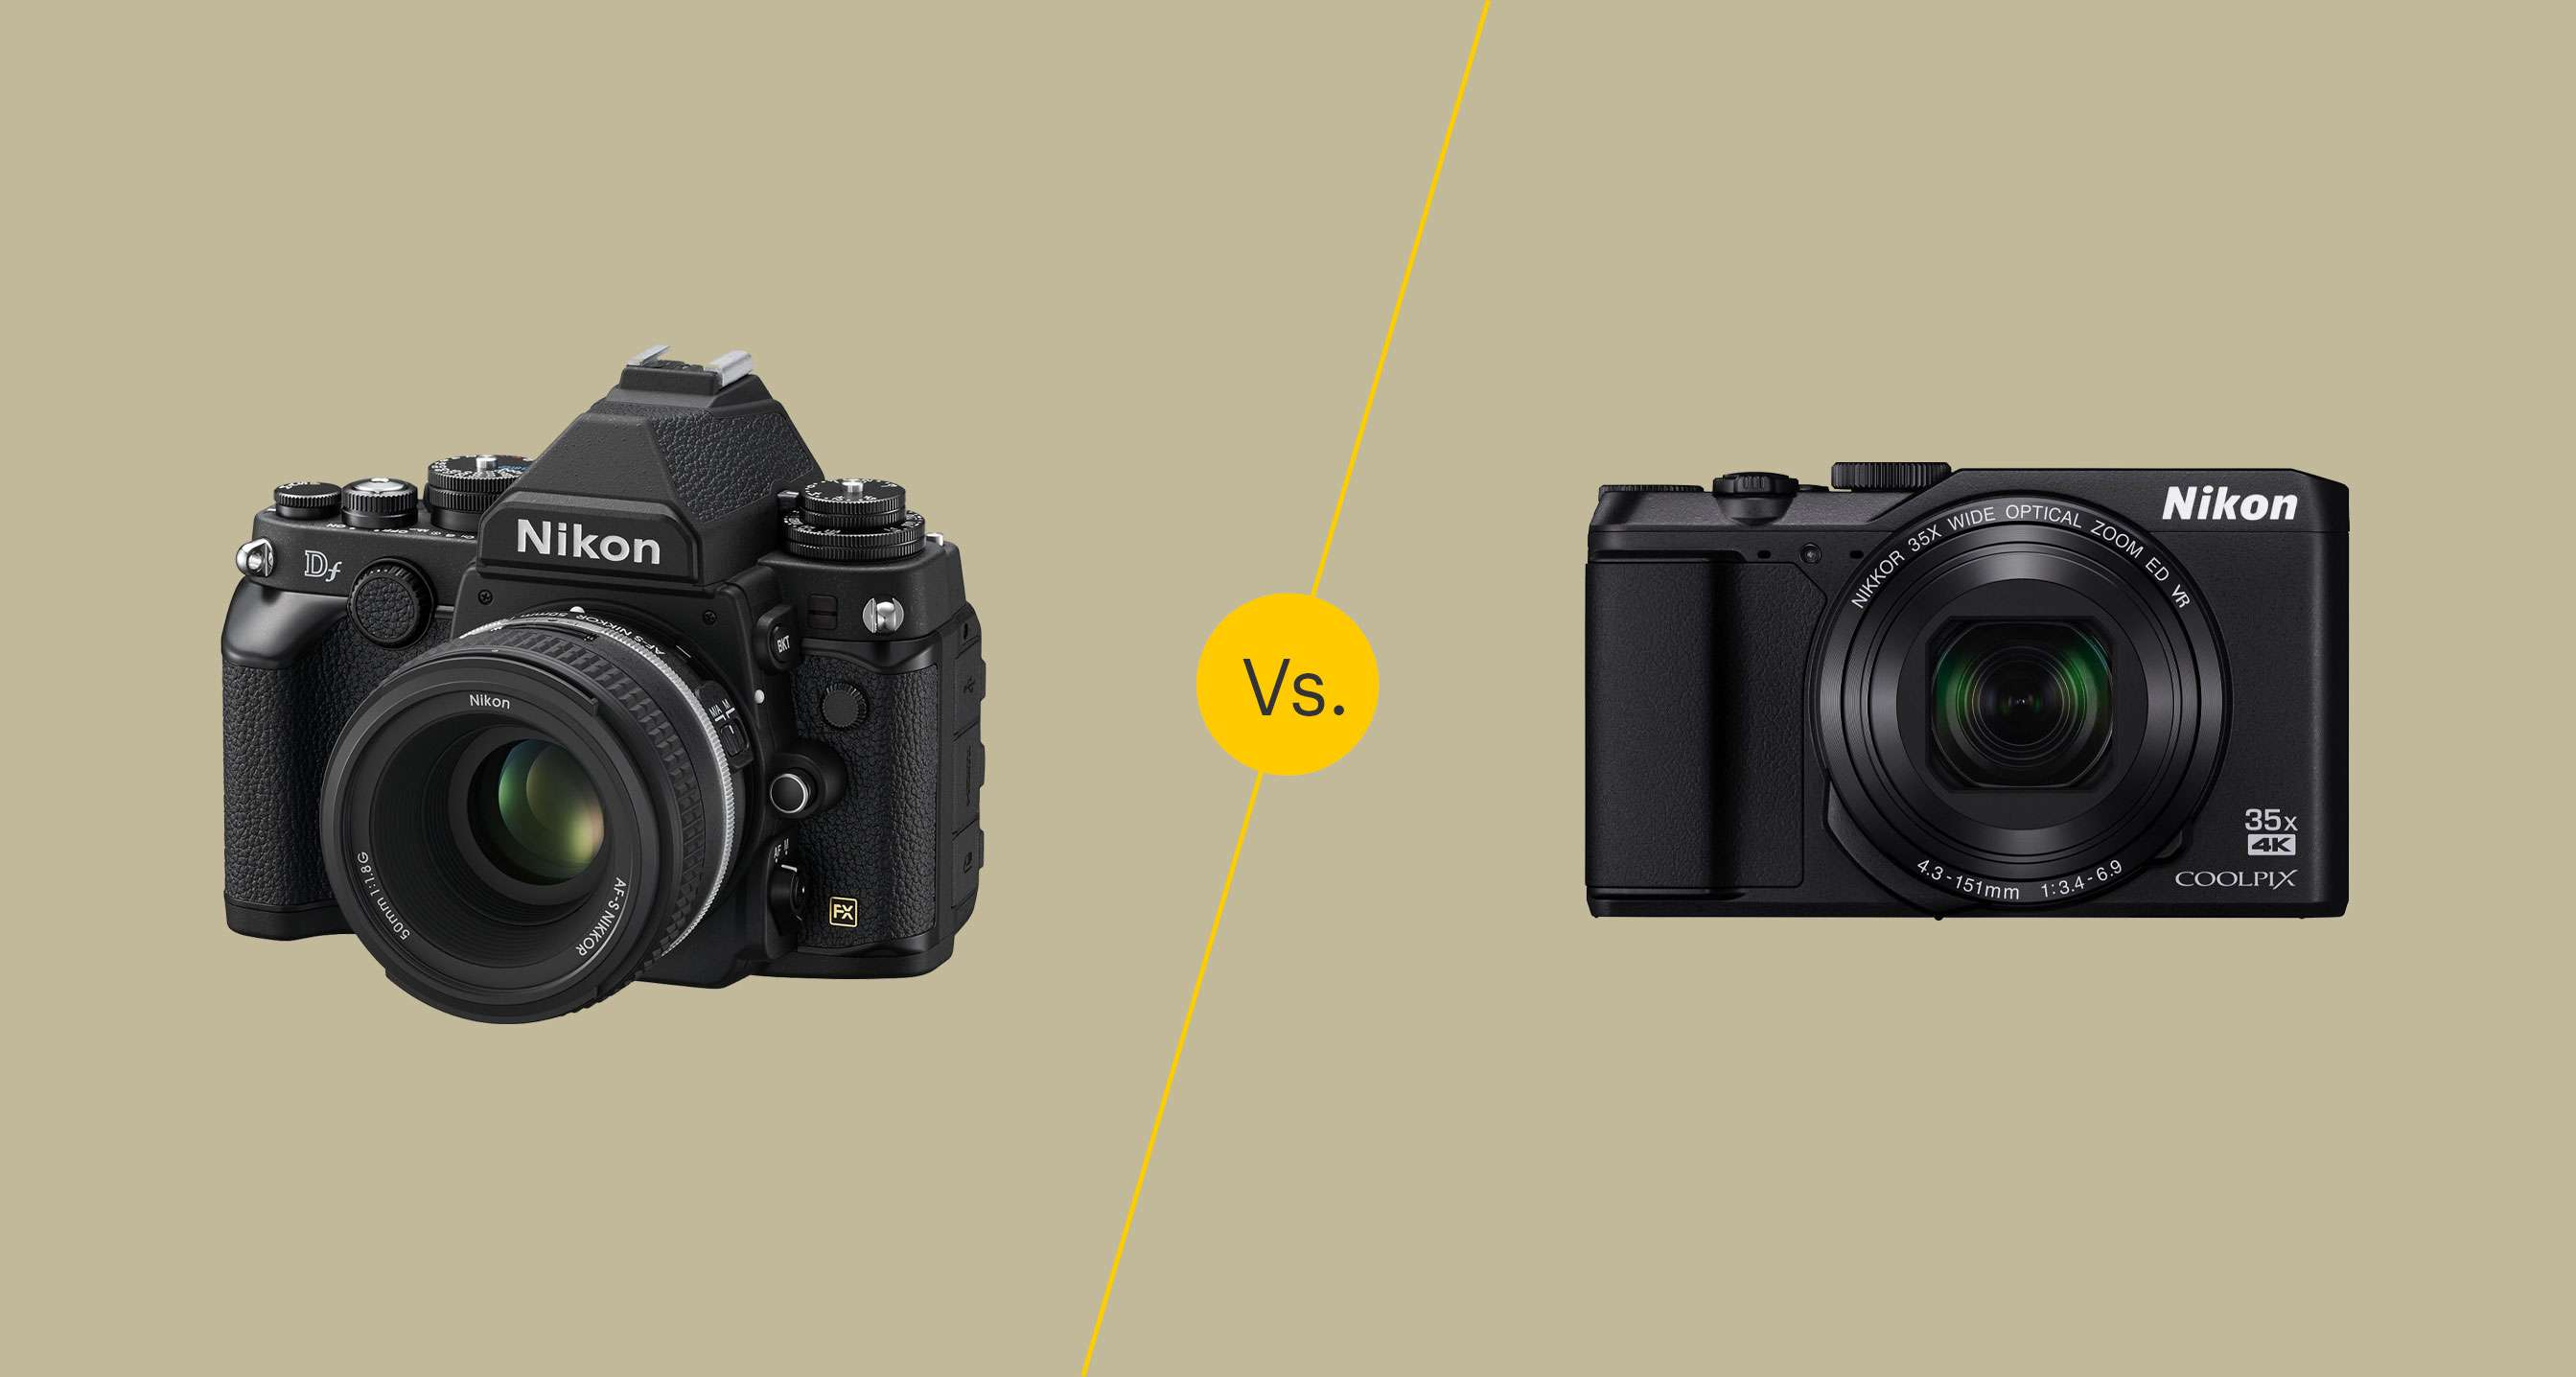 DSLR vs. Point-and-shoot cameras